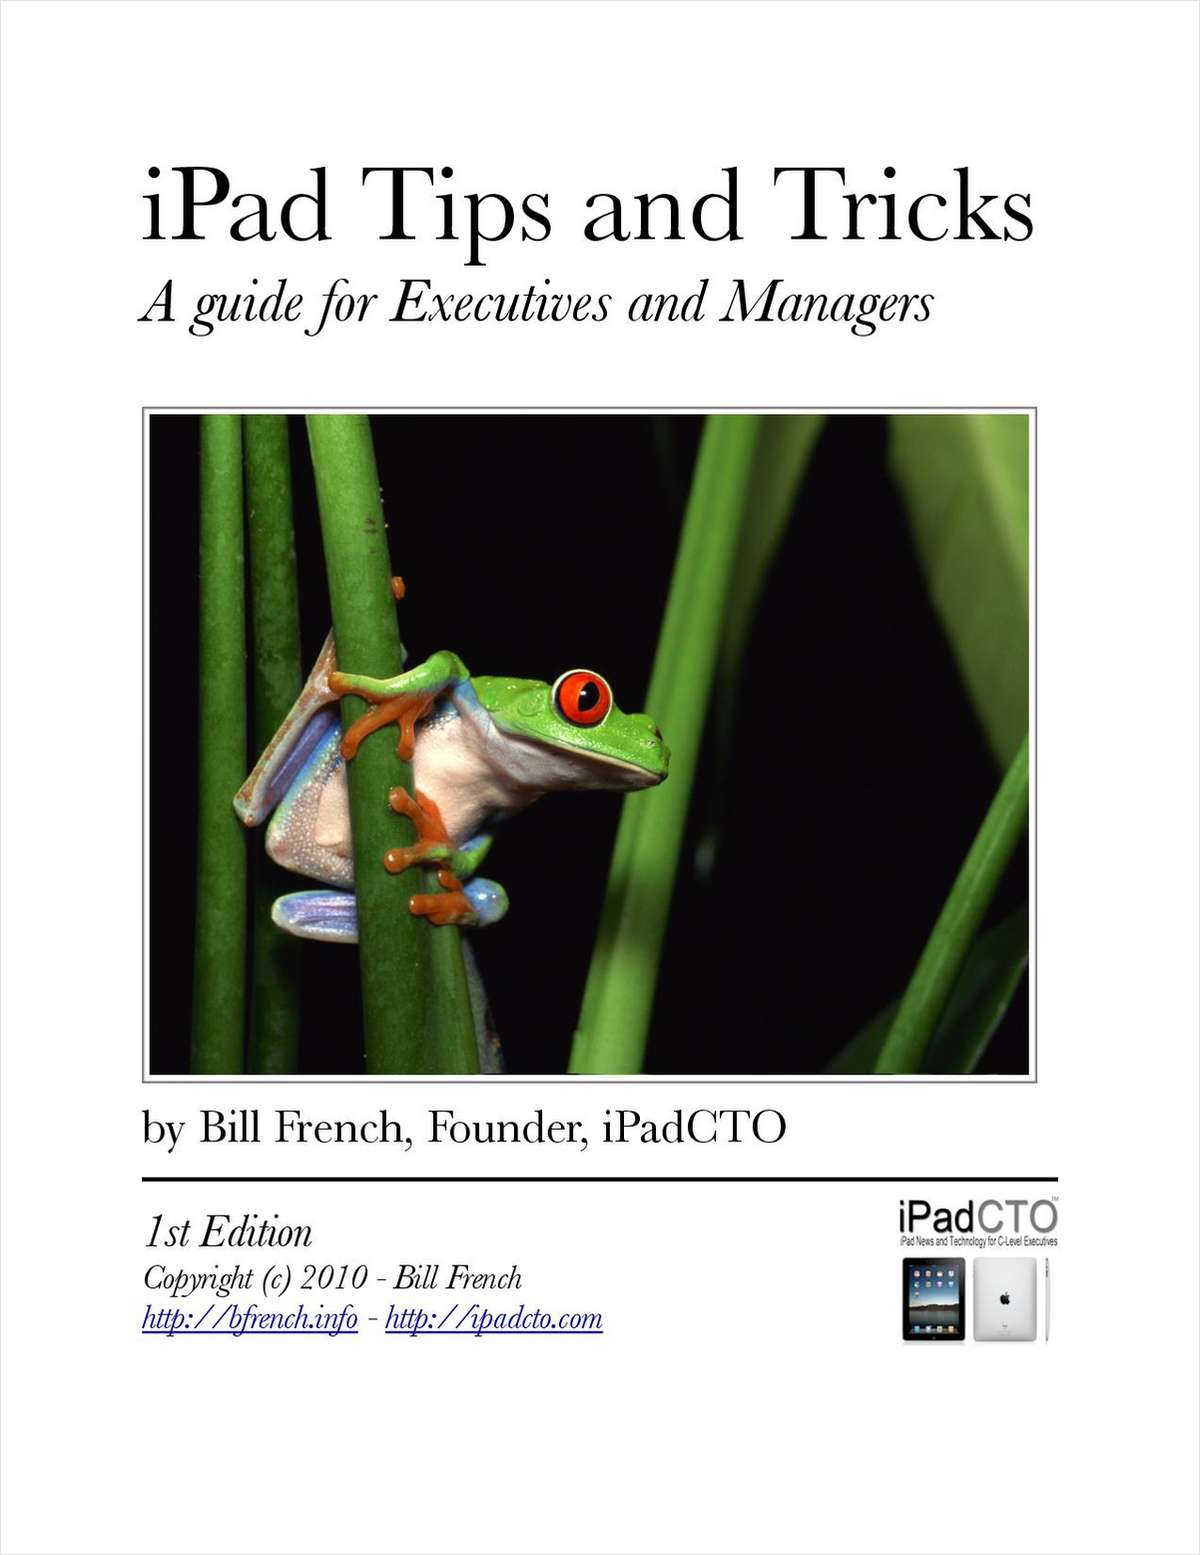 iPad Tips and Tricks - A Guide for Executives and Managers